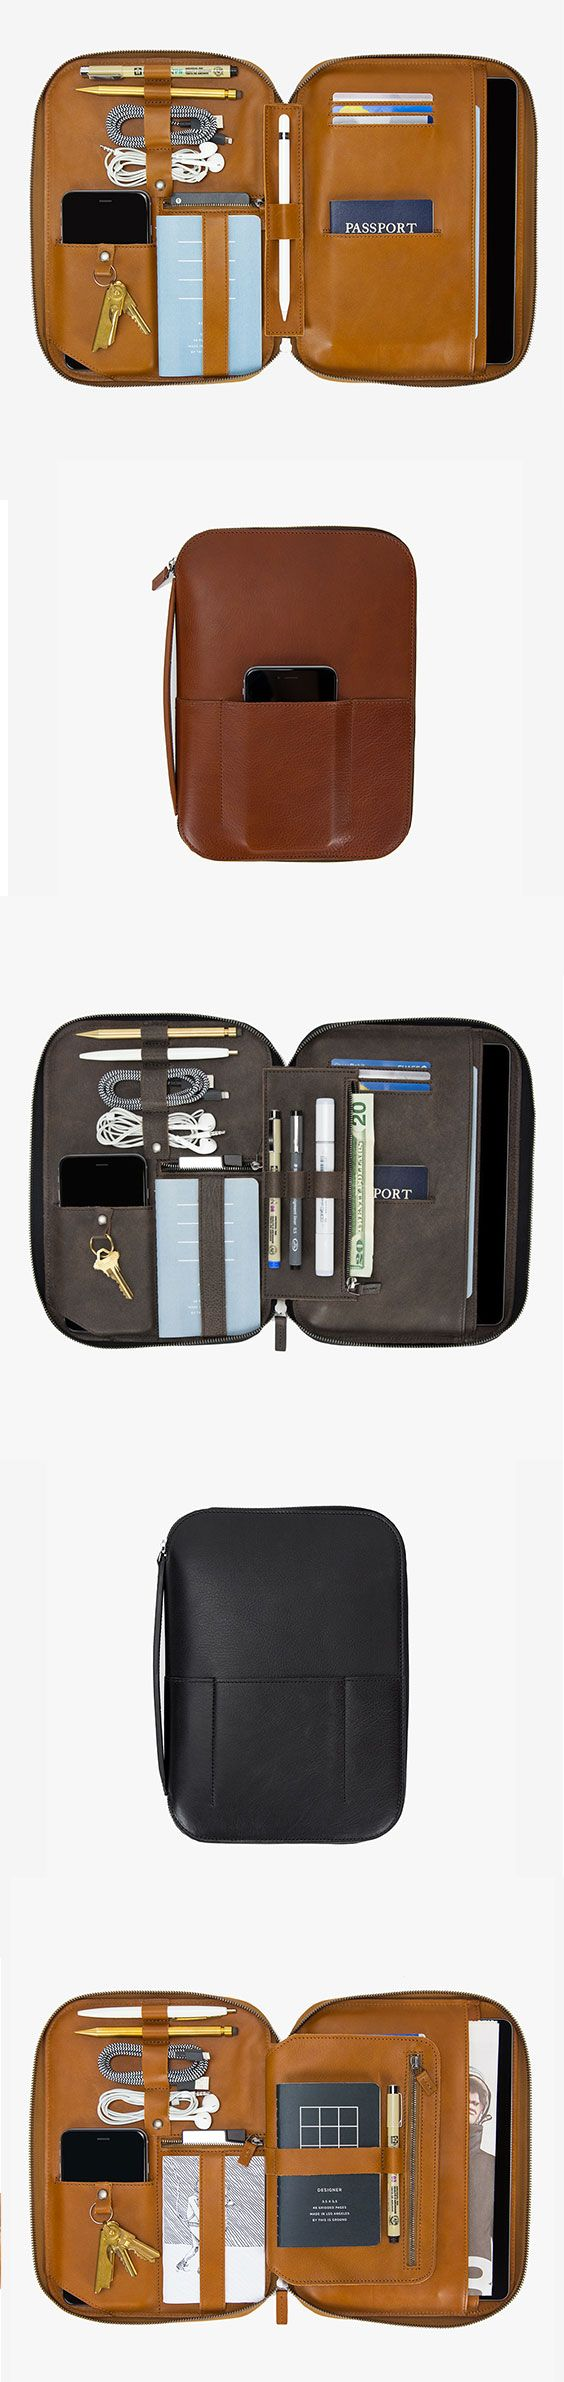 pro leather case / organizer for your tech & creative tools